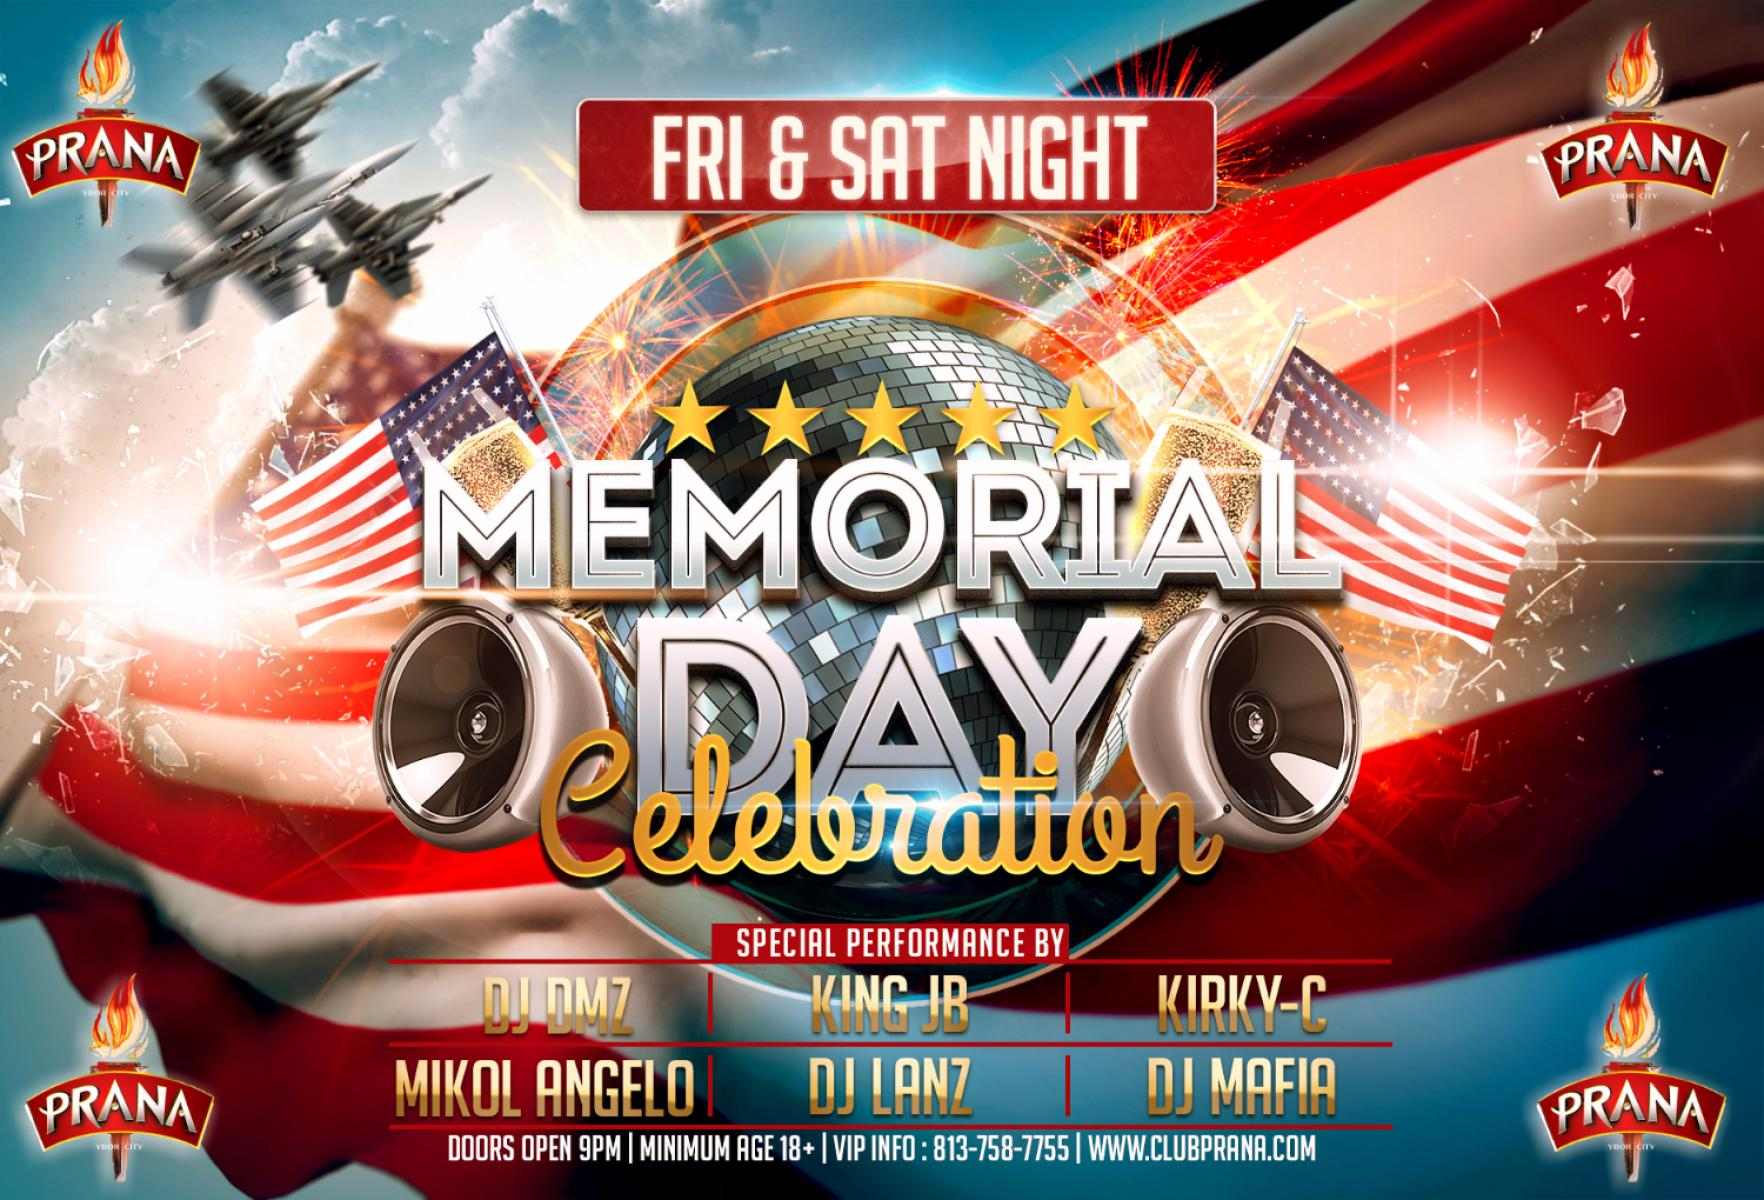 Memorial Day Weekend Friday at Club Prana